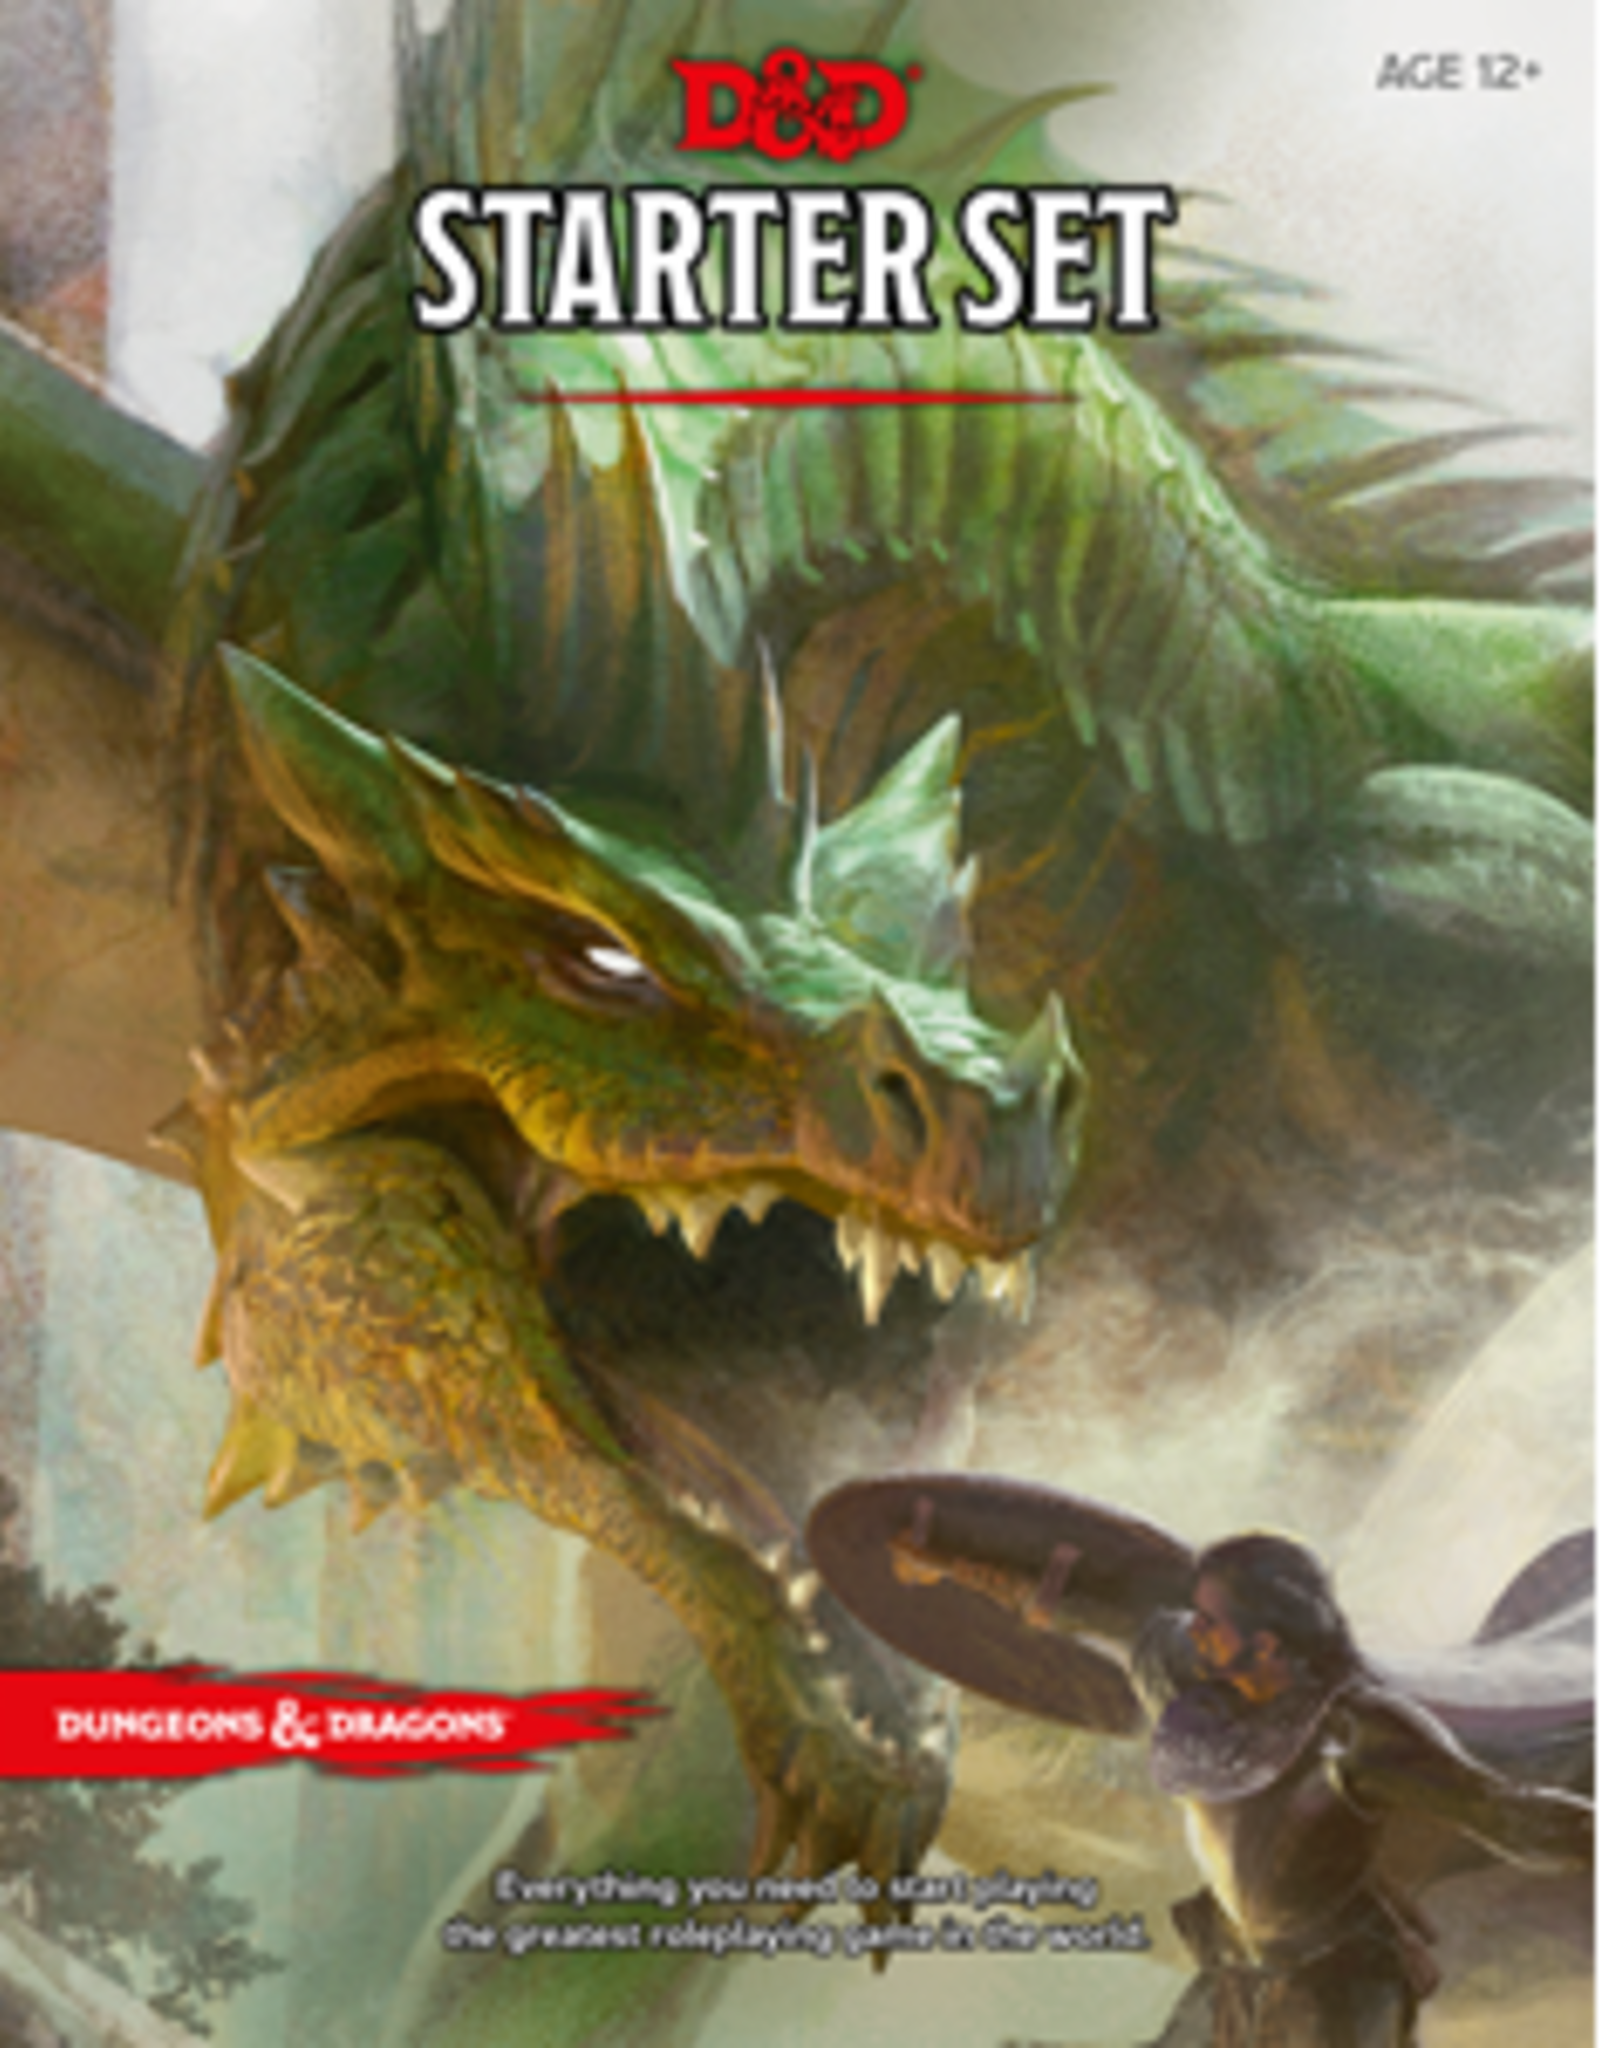 Wizards of the Coast Dungeons & Dragons Starter Box Set